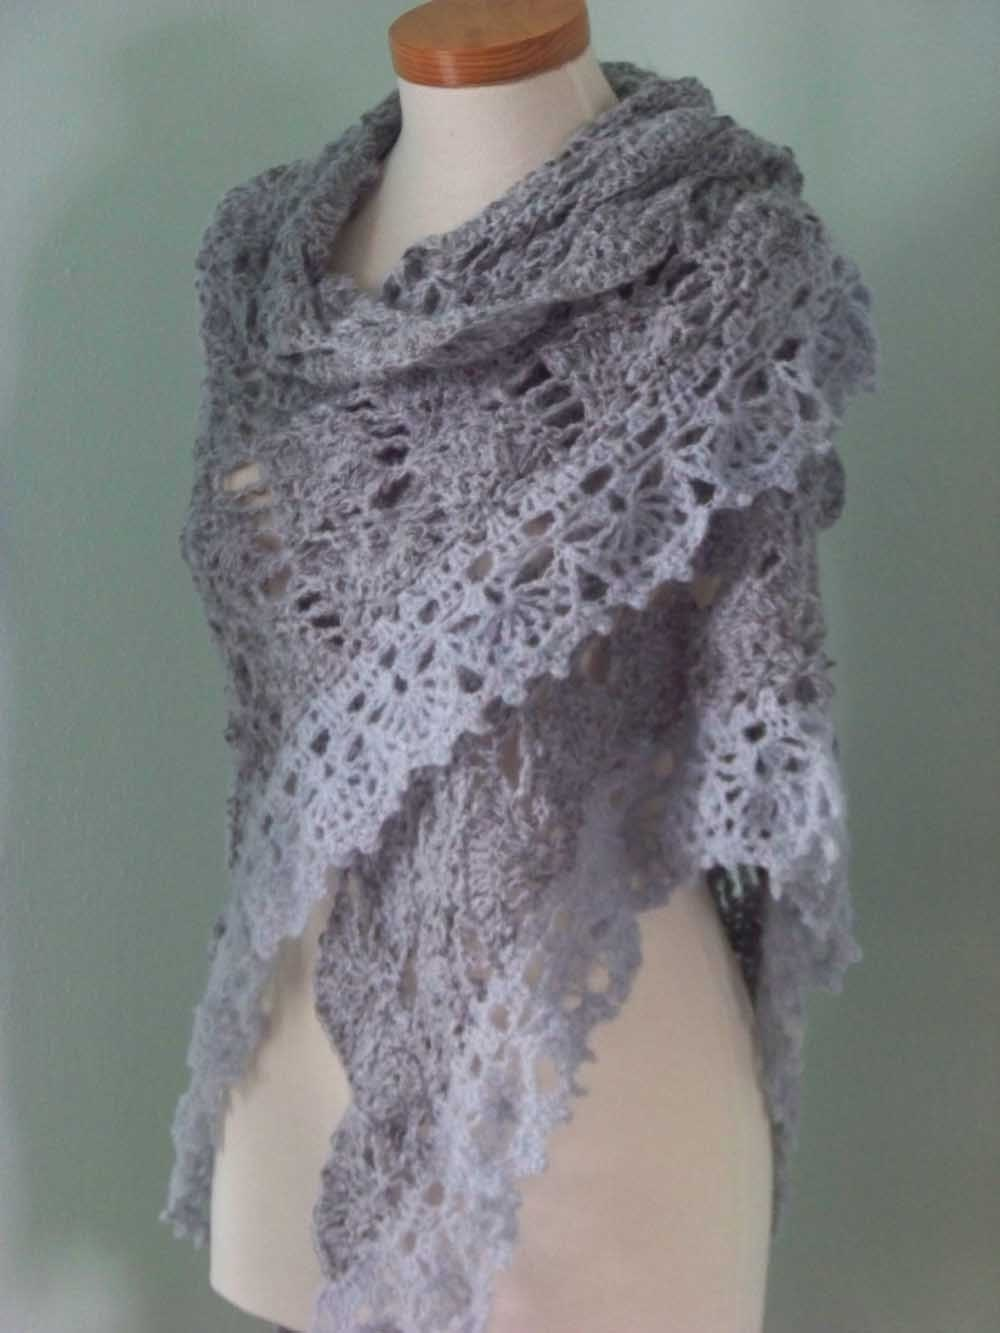 Crochet Shawl Pattern : CROCHET FREE LACY PATTERN SHAWL - Crochet Club